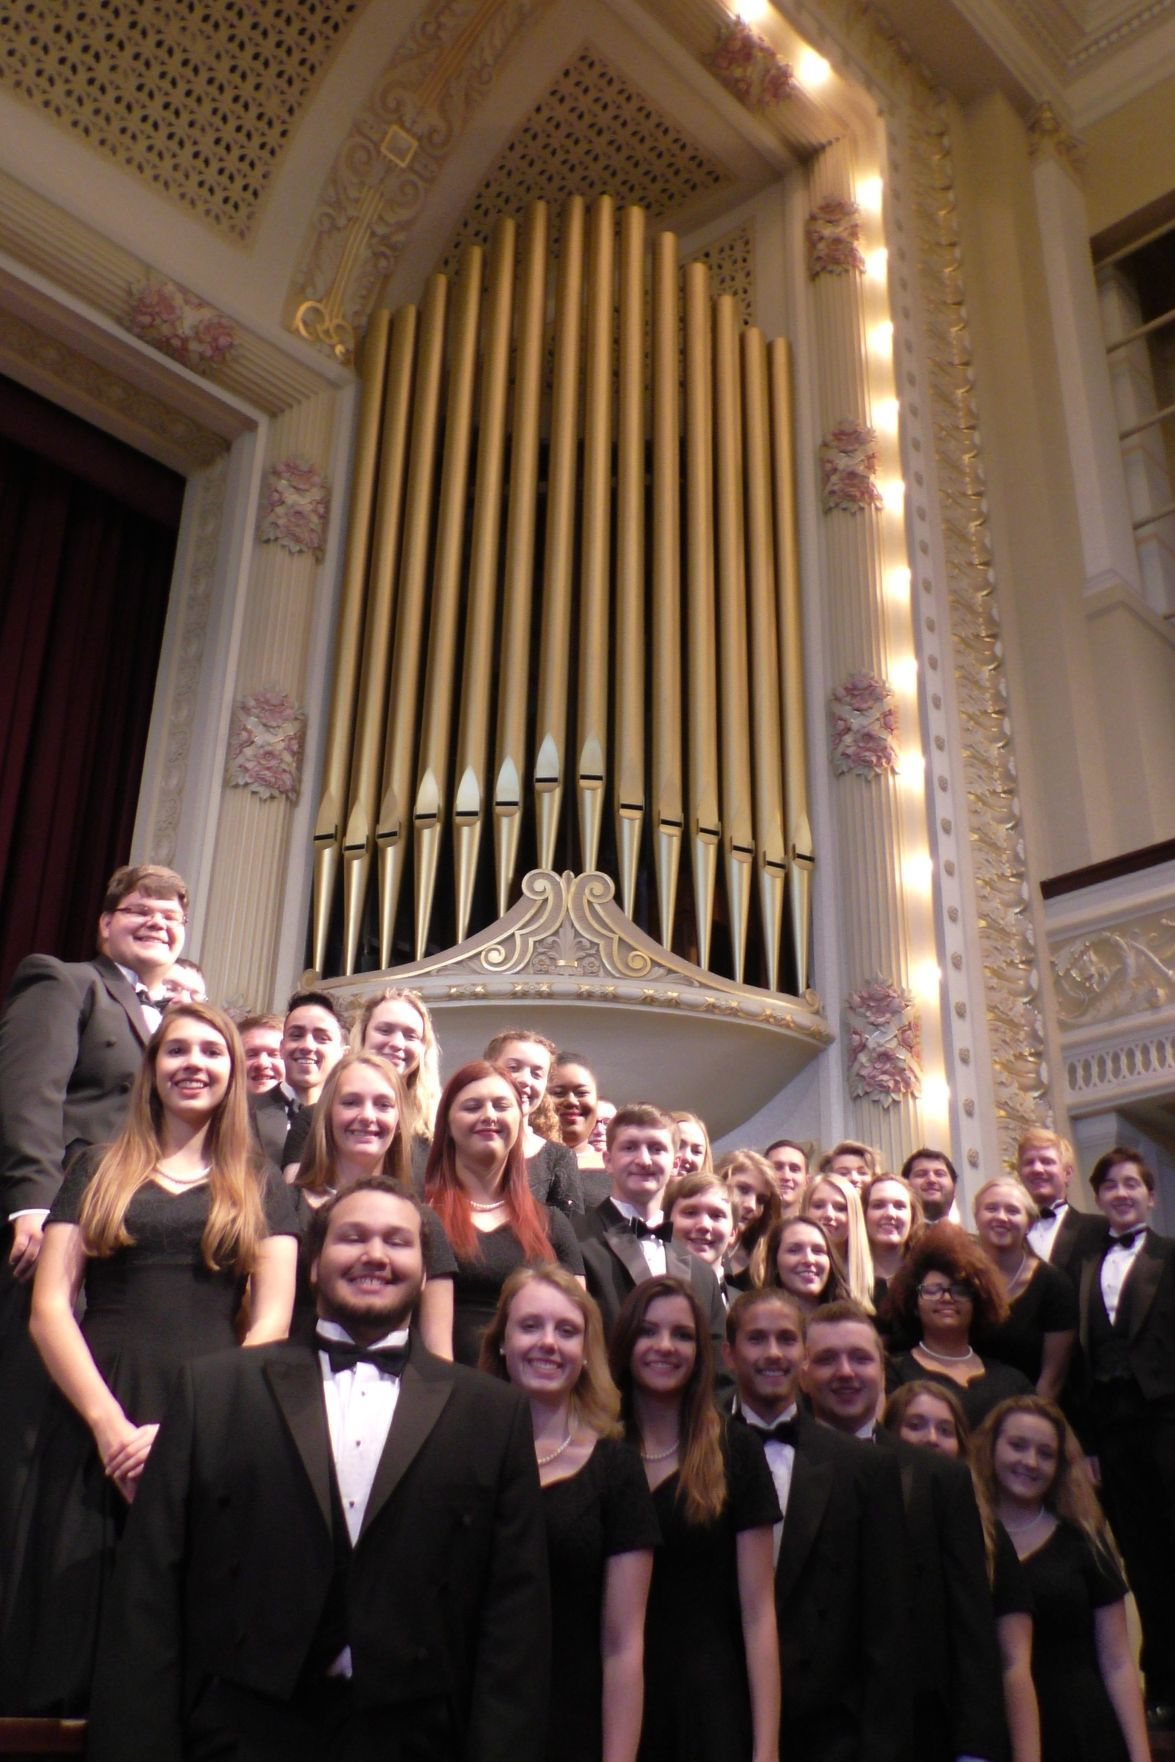 USD Chamber Singers